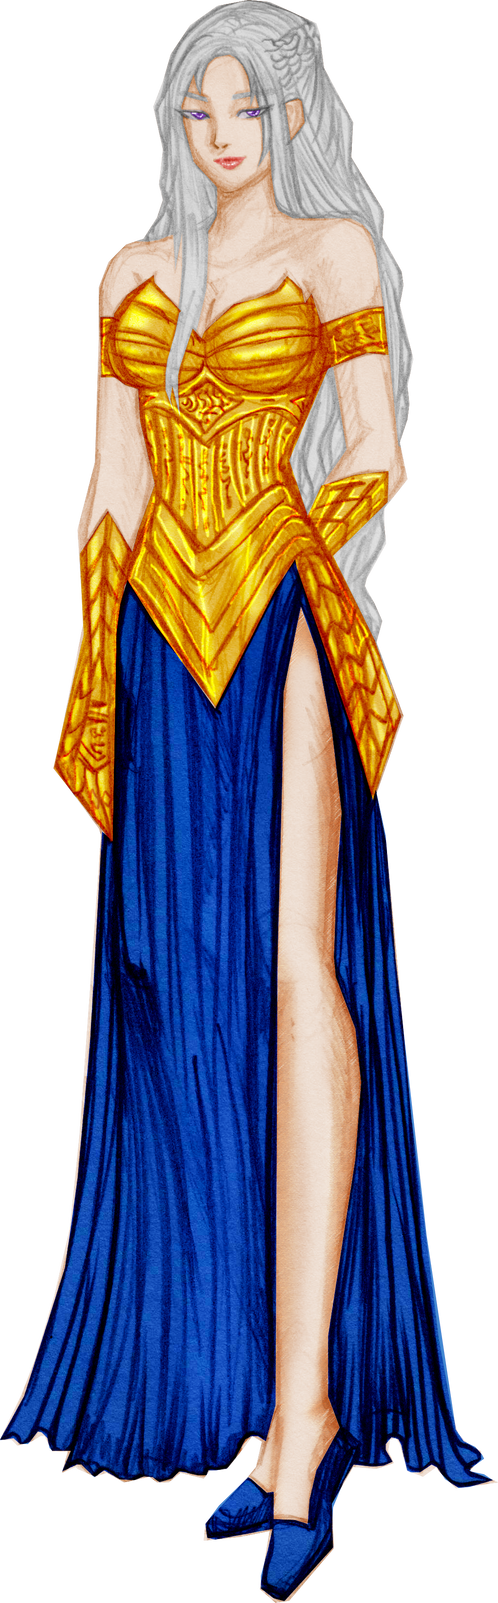 Gold and Blue version for Widowmaker by justinedarkchylde